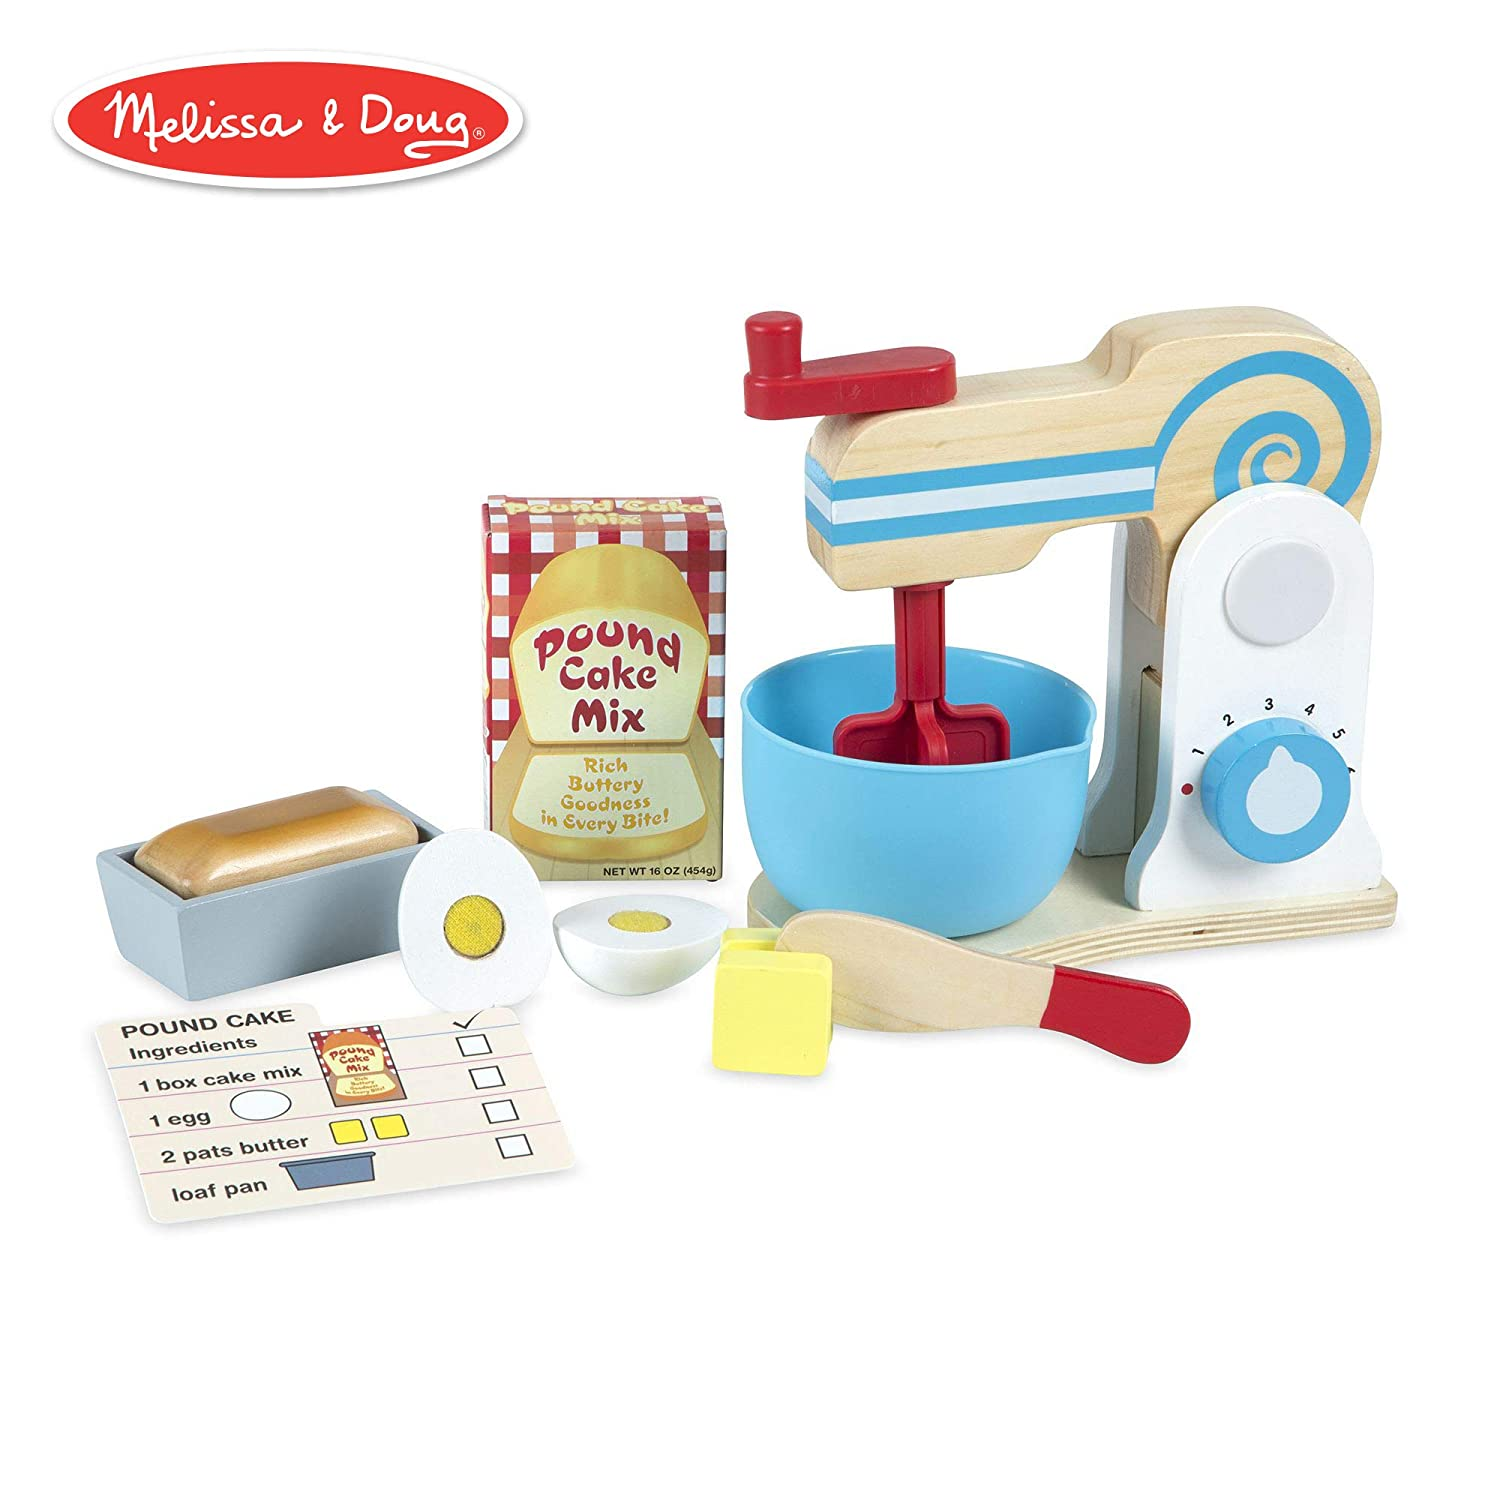 Melissa doug wooden make a cake mixer set kitchen toy numbered turning dials encourages creative thinking 11 piece set 13 5″ h x 10″ w x 5″ l